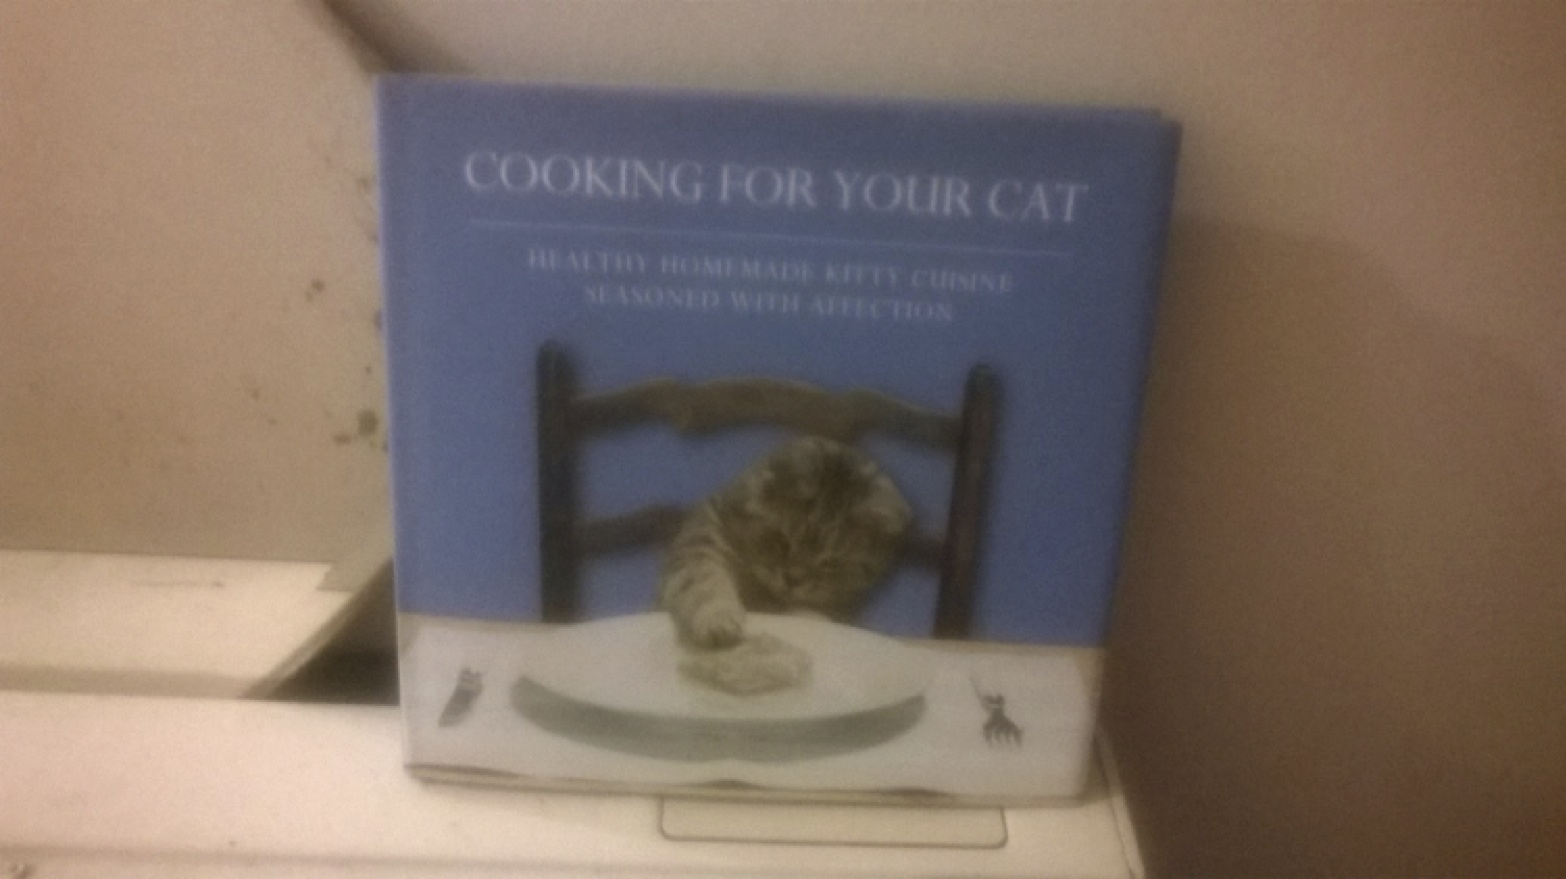 Cooking for cats from Seb Vaas